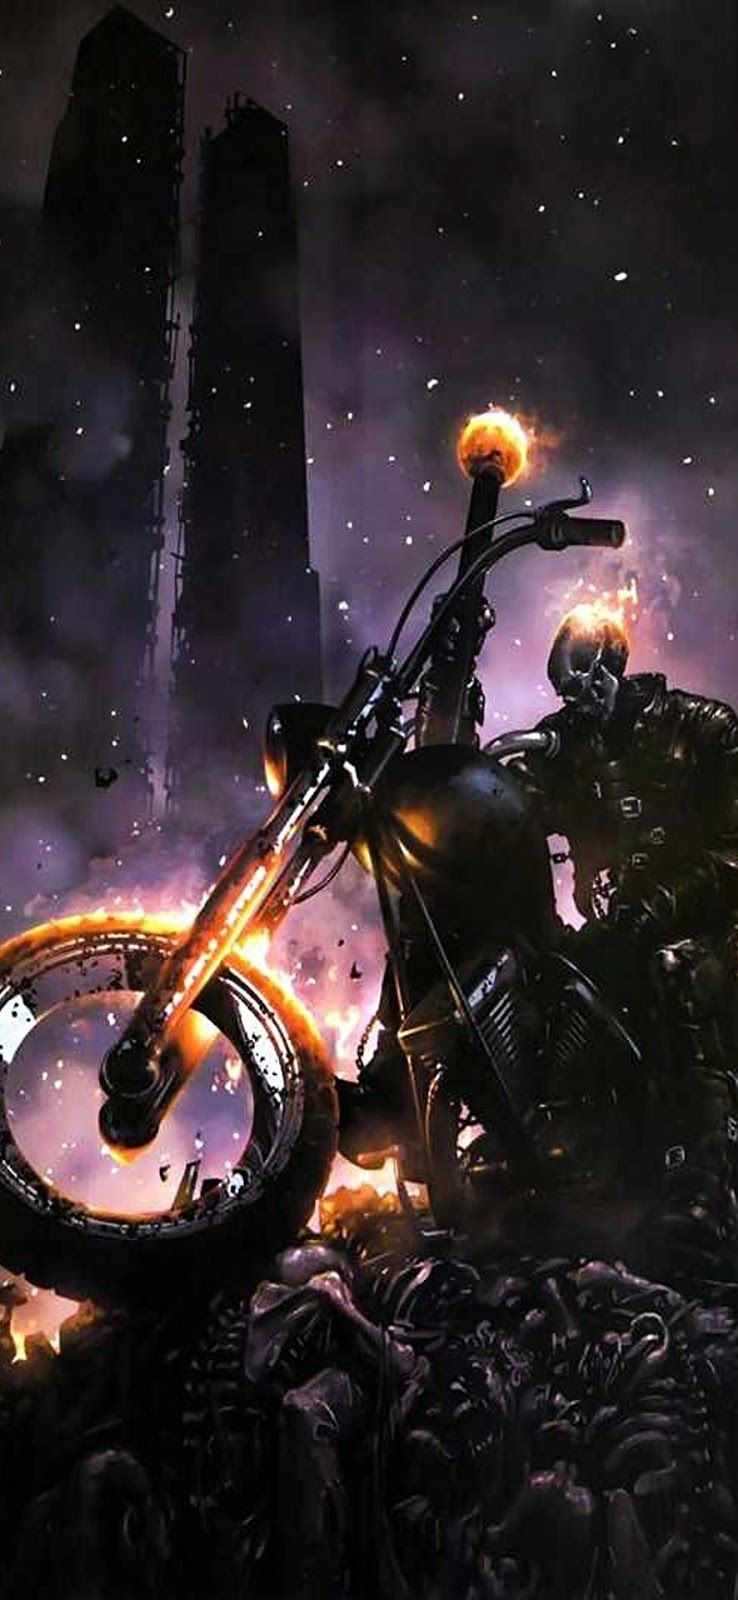 Ghost Rider Images Full Hd For Mobile Screen Wallpaper Background Ghost Rider Bike Images Hd Ghost R In 2020 Ghost Rider Images Ghost Rider Marvel Ghost Rider Tattoo